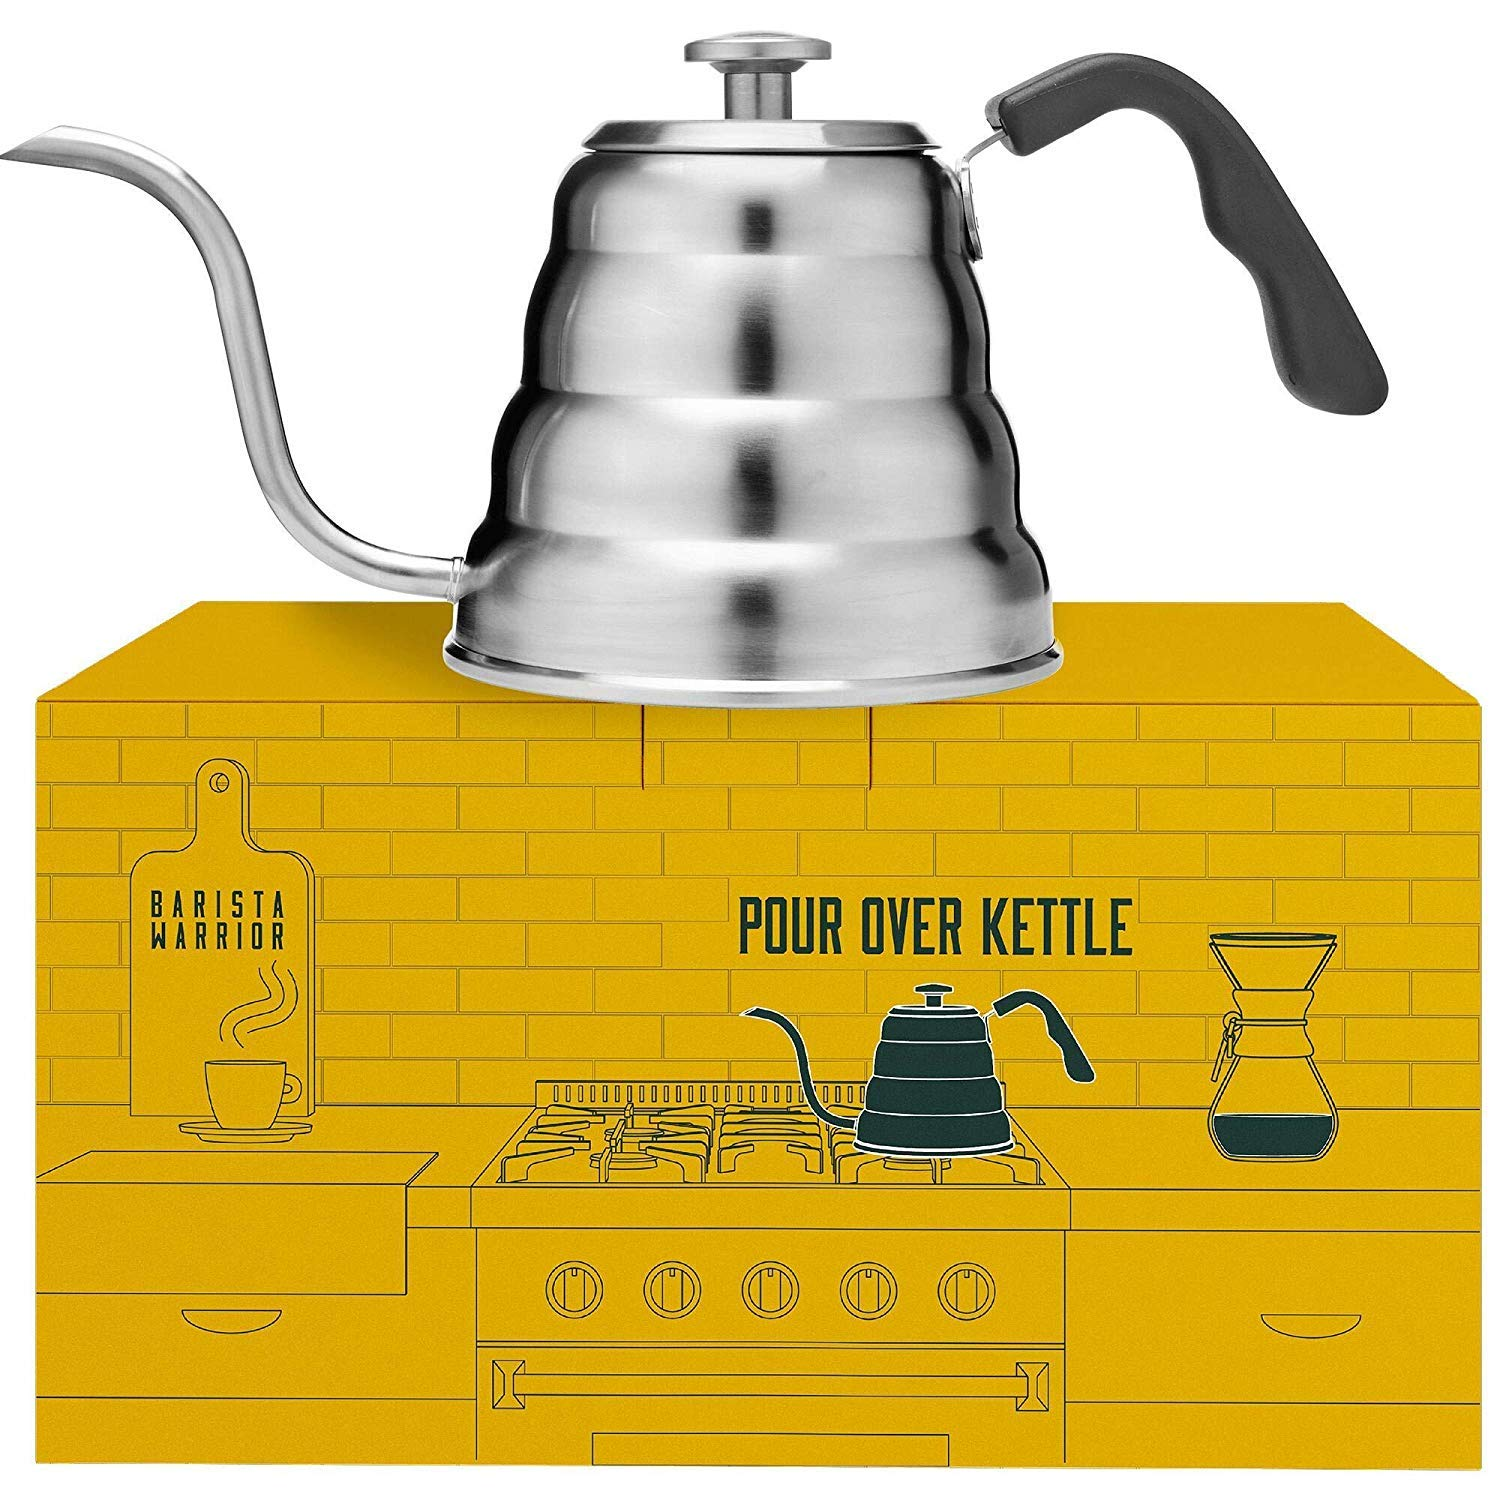 Pour Over Kettle with Thermometer - Gooseneck Kettle for Pour Over Coffee Kettle (1.2 Liter | 40 fl oz) by Barista Warrior